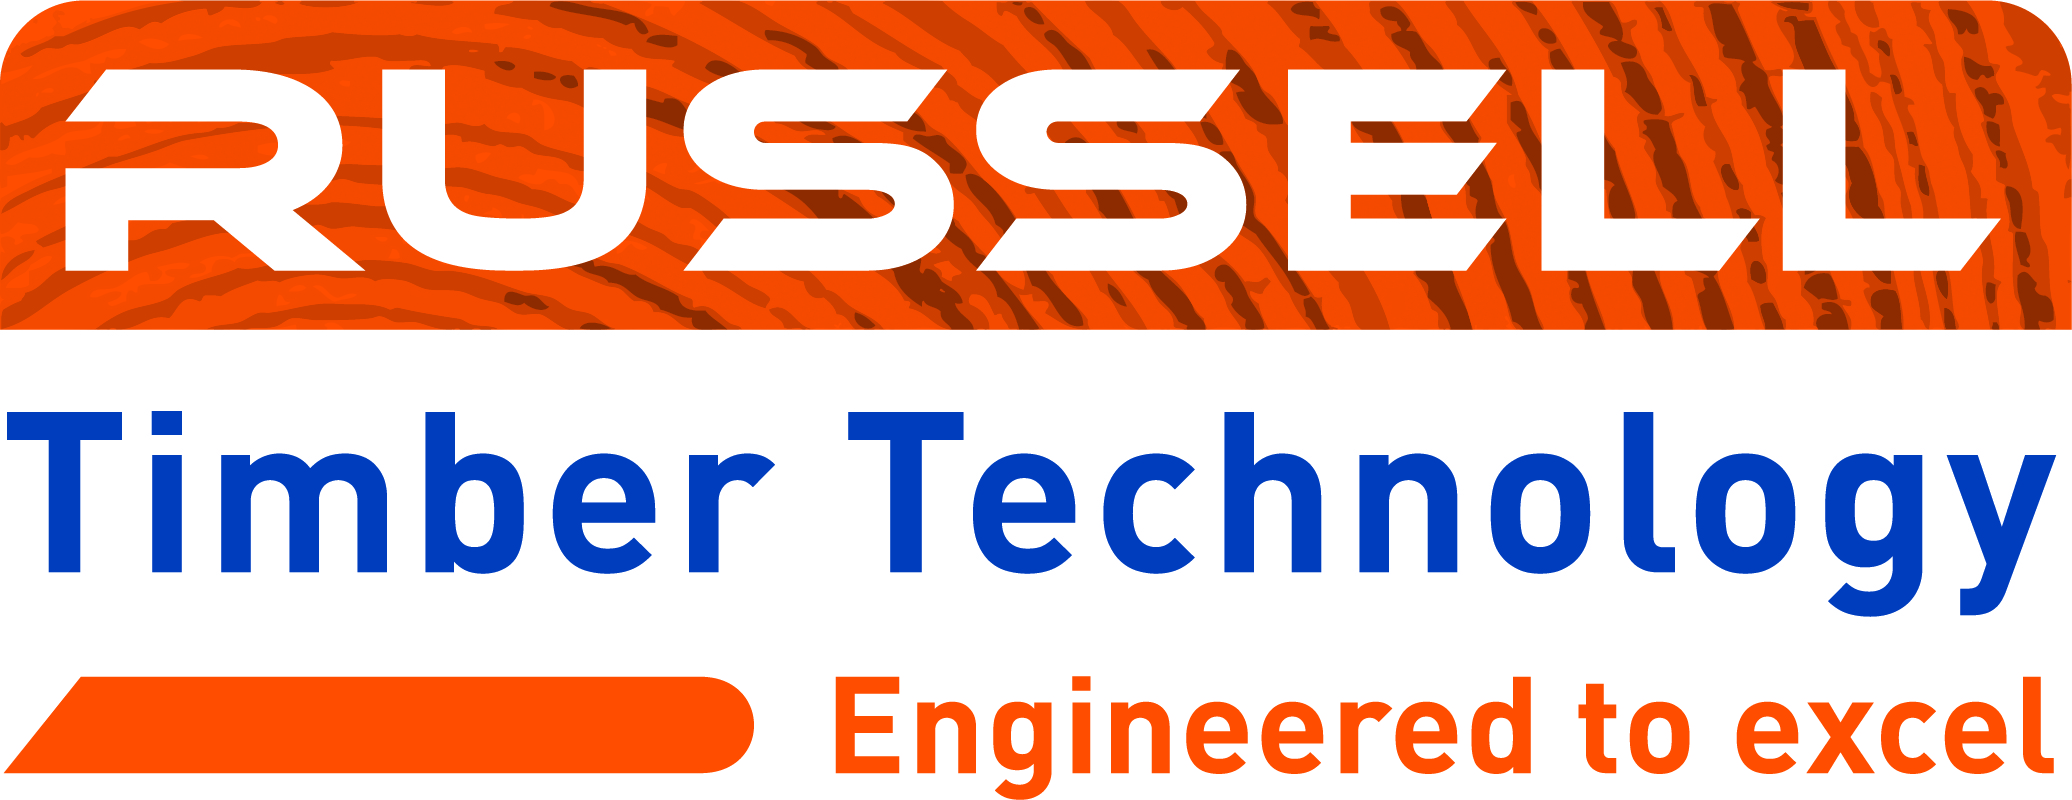 Russell Timber Technology